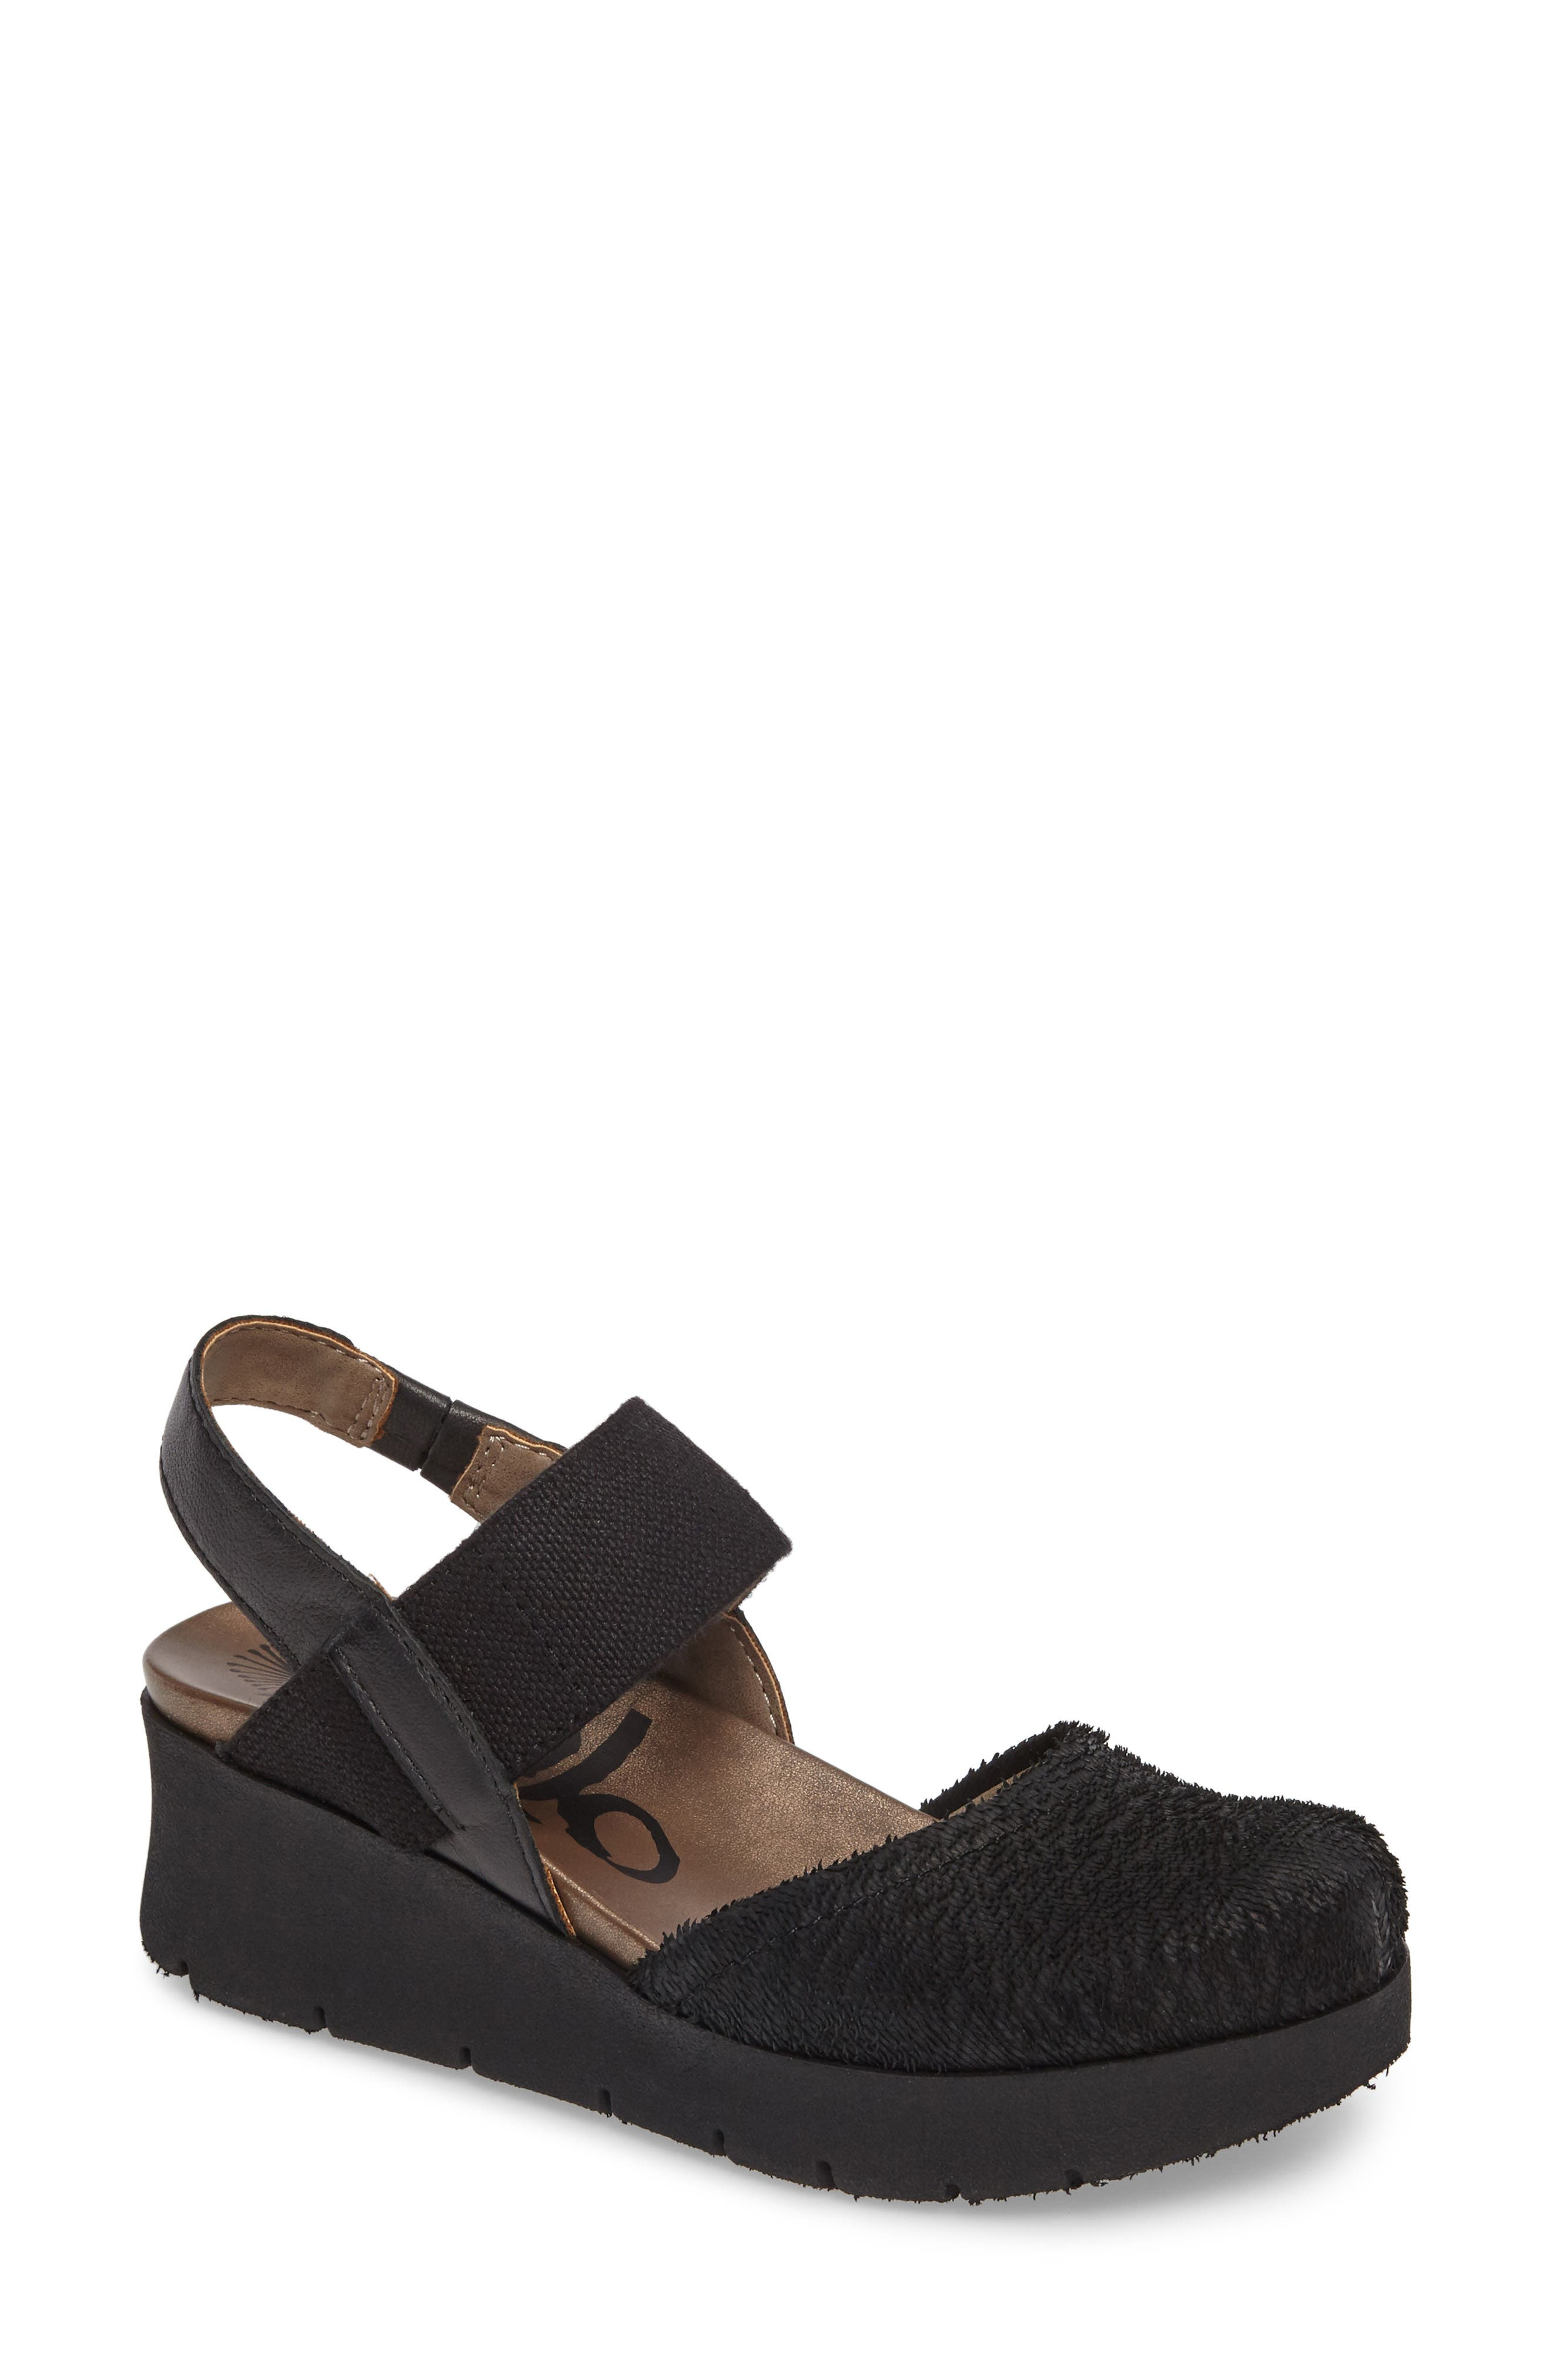 Roadie Mary Jane Platform Wedge,                             Main thumbnail 1, color,                             Black Leather